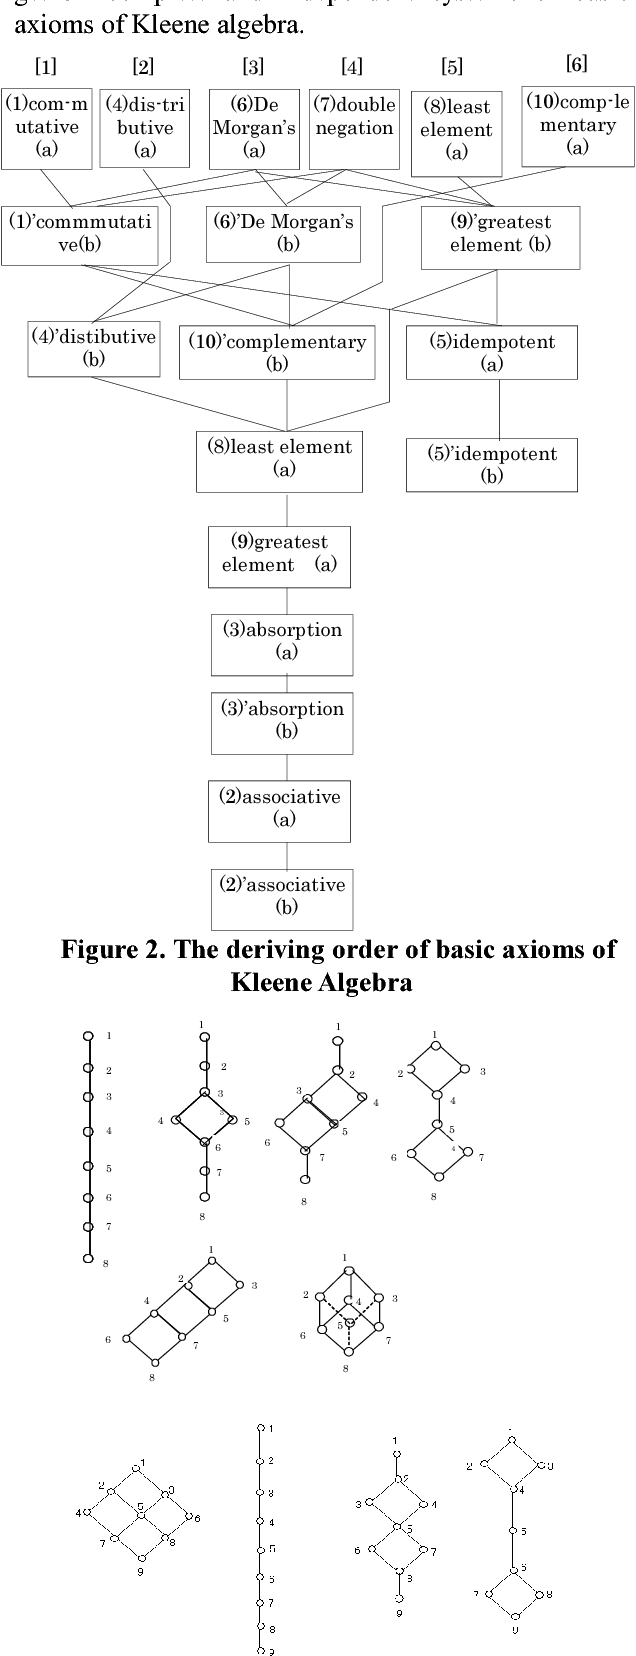 Clarifying the Systems of Axioms Based on the Method of